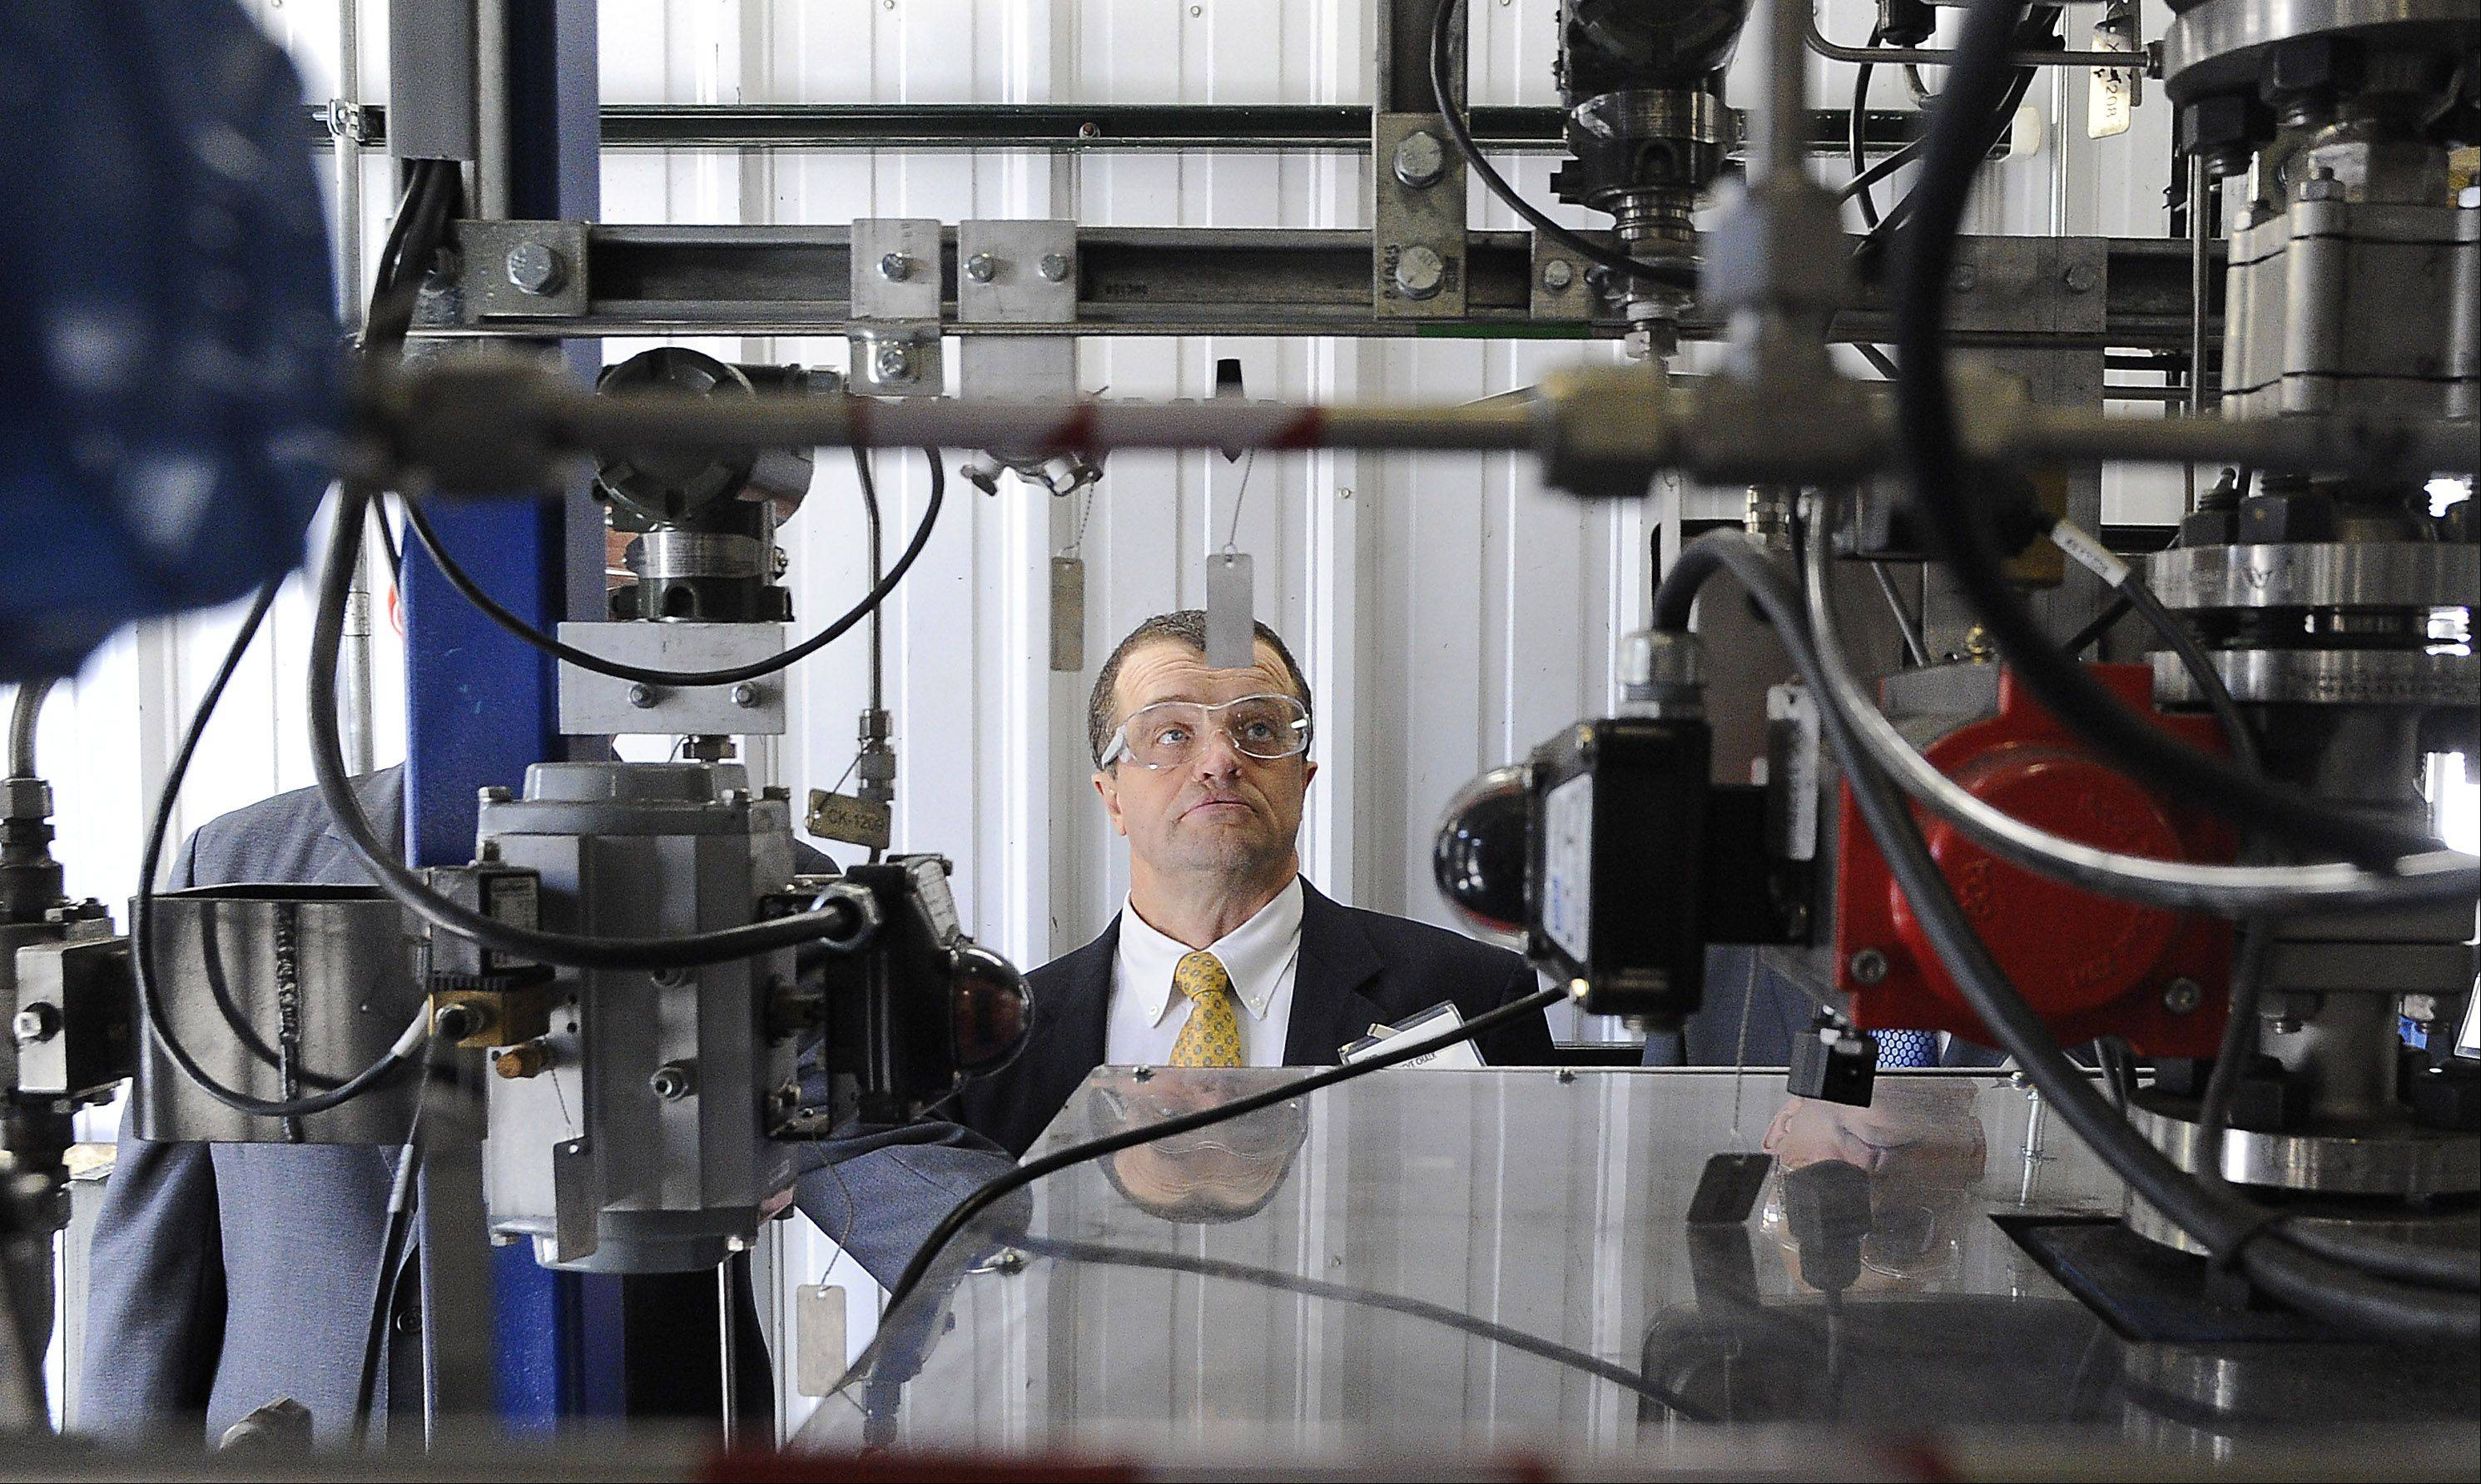 Steven Chalk from the U.S. Department of Energy in Washington D.C. looks over the machinery at Gas Technology Institute (GTI) in Des Plaines.